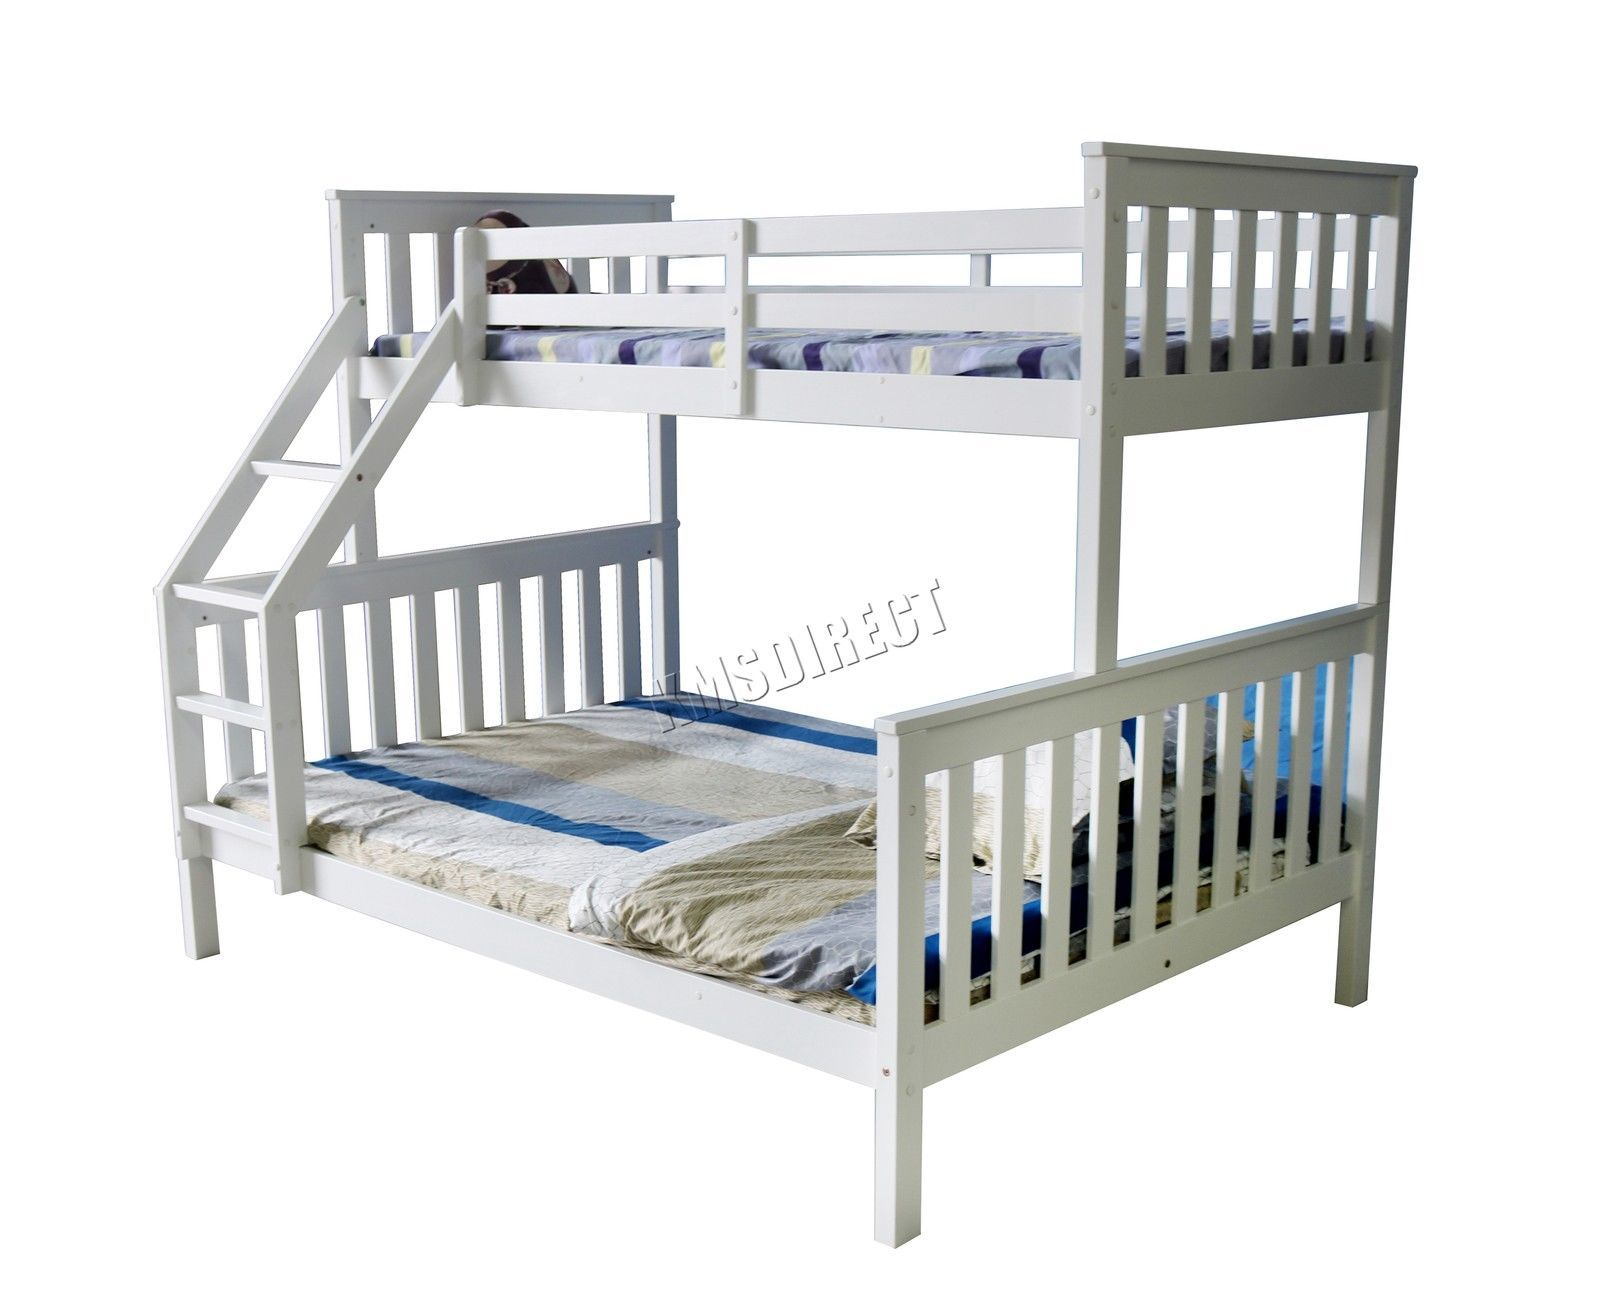 Westwood Bunk Bed Wooden Frame Children Kids Triple Sleeper No